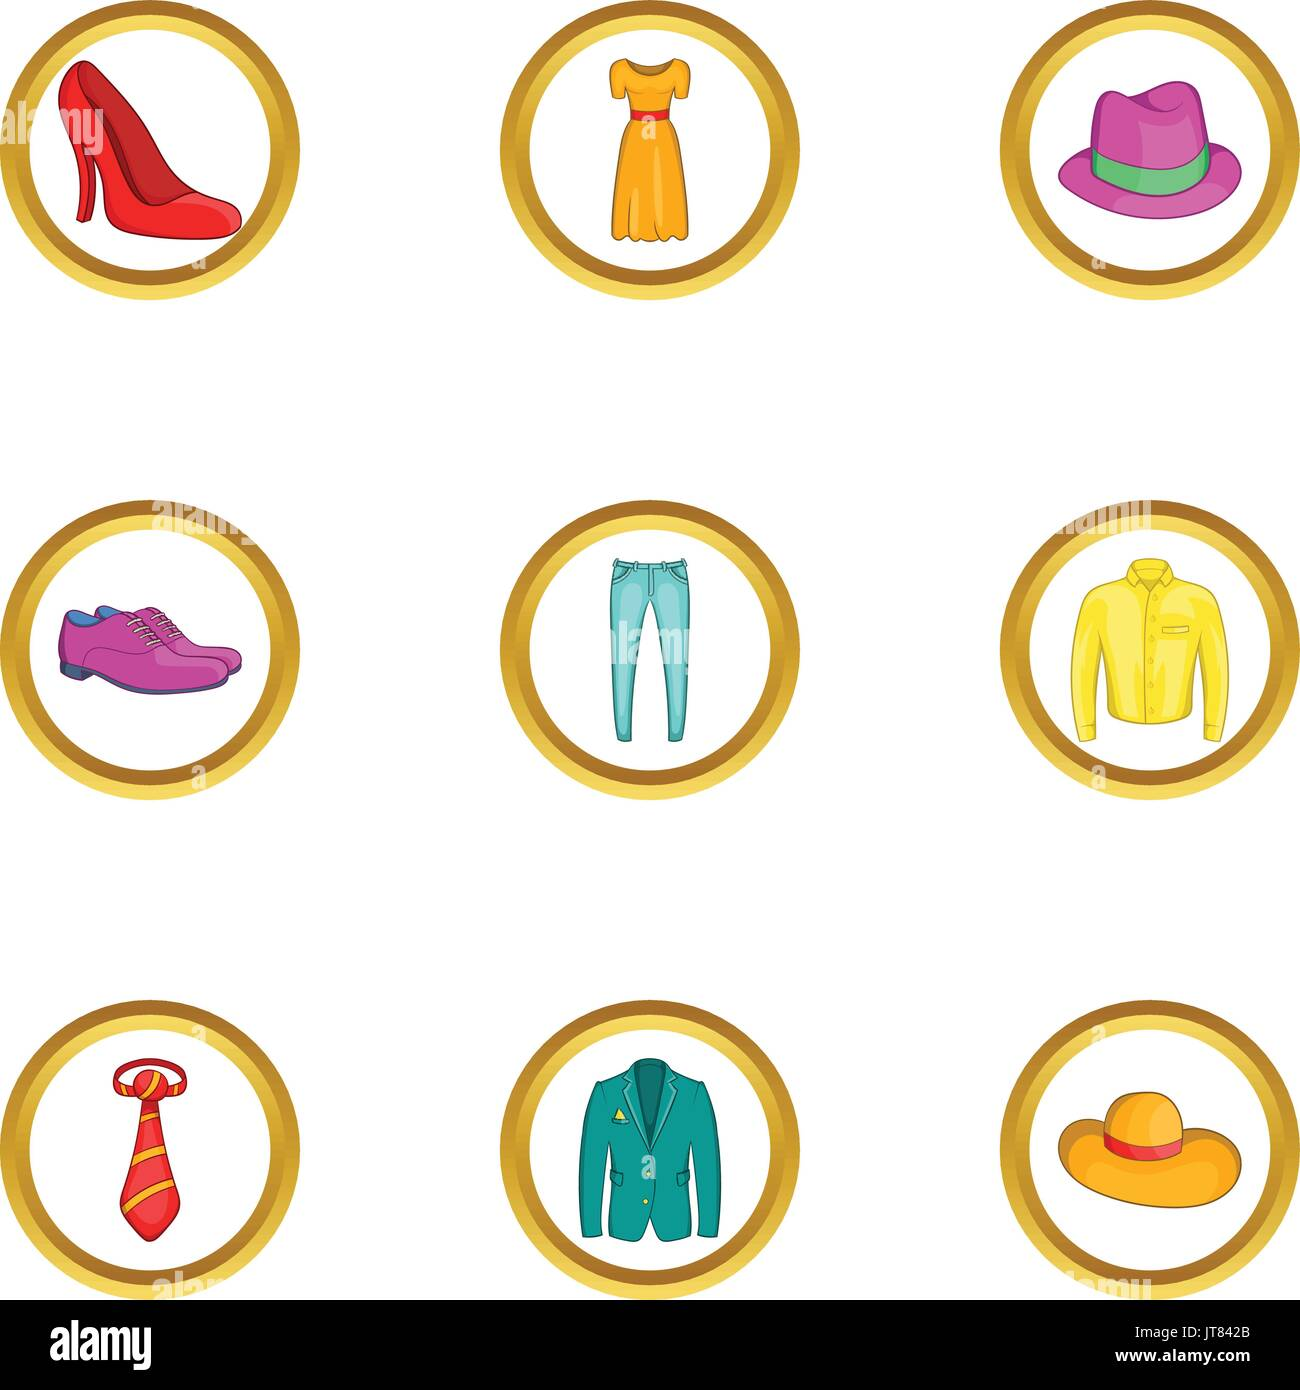 Classic clothes icon set, cartoon style - Stock Vector